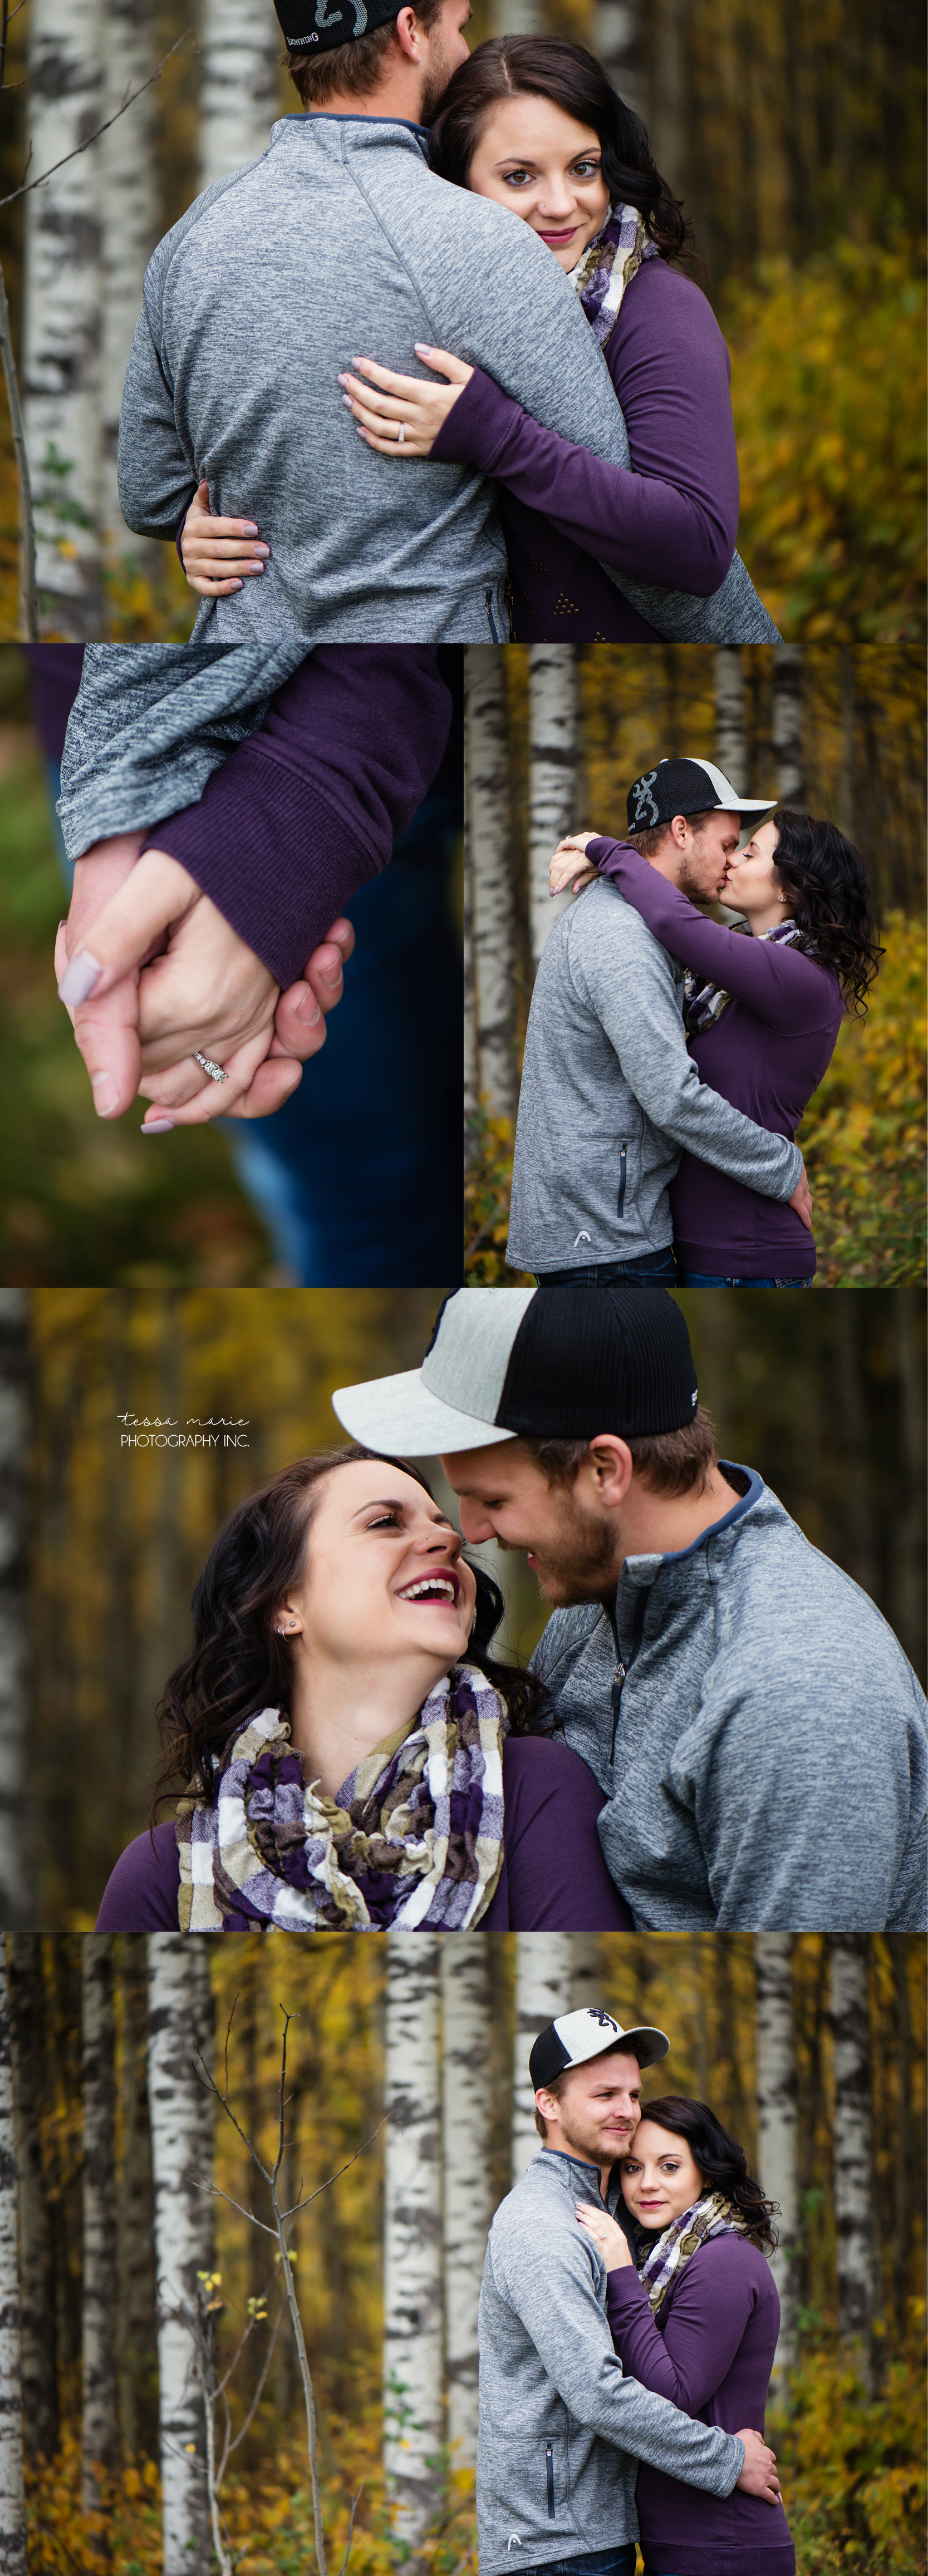 Engagement photos, Alberta engagement photos, stony plain, Spruce Grove, Drayton Valley, Photographer, Wedding Photographer, Portrait, Lifestyle portrait, Tomahawk